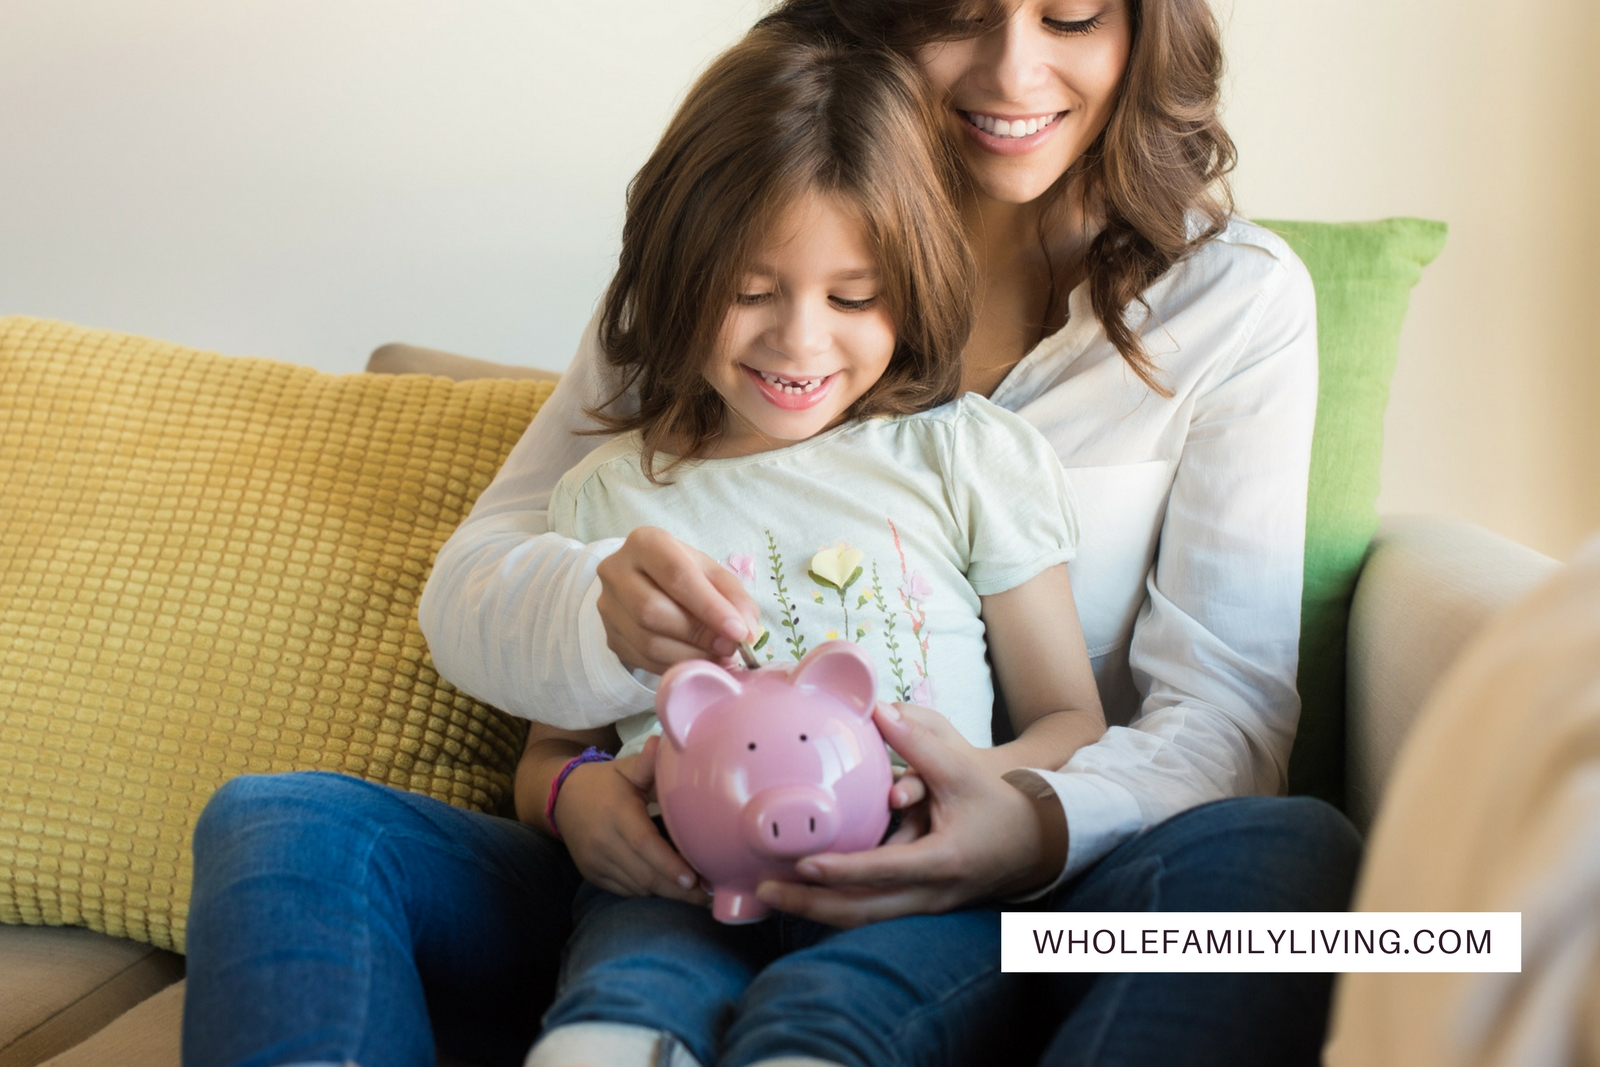 7 Steps to Improve Your Family's Financial Well-being – April